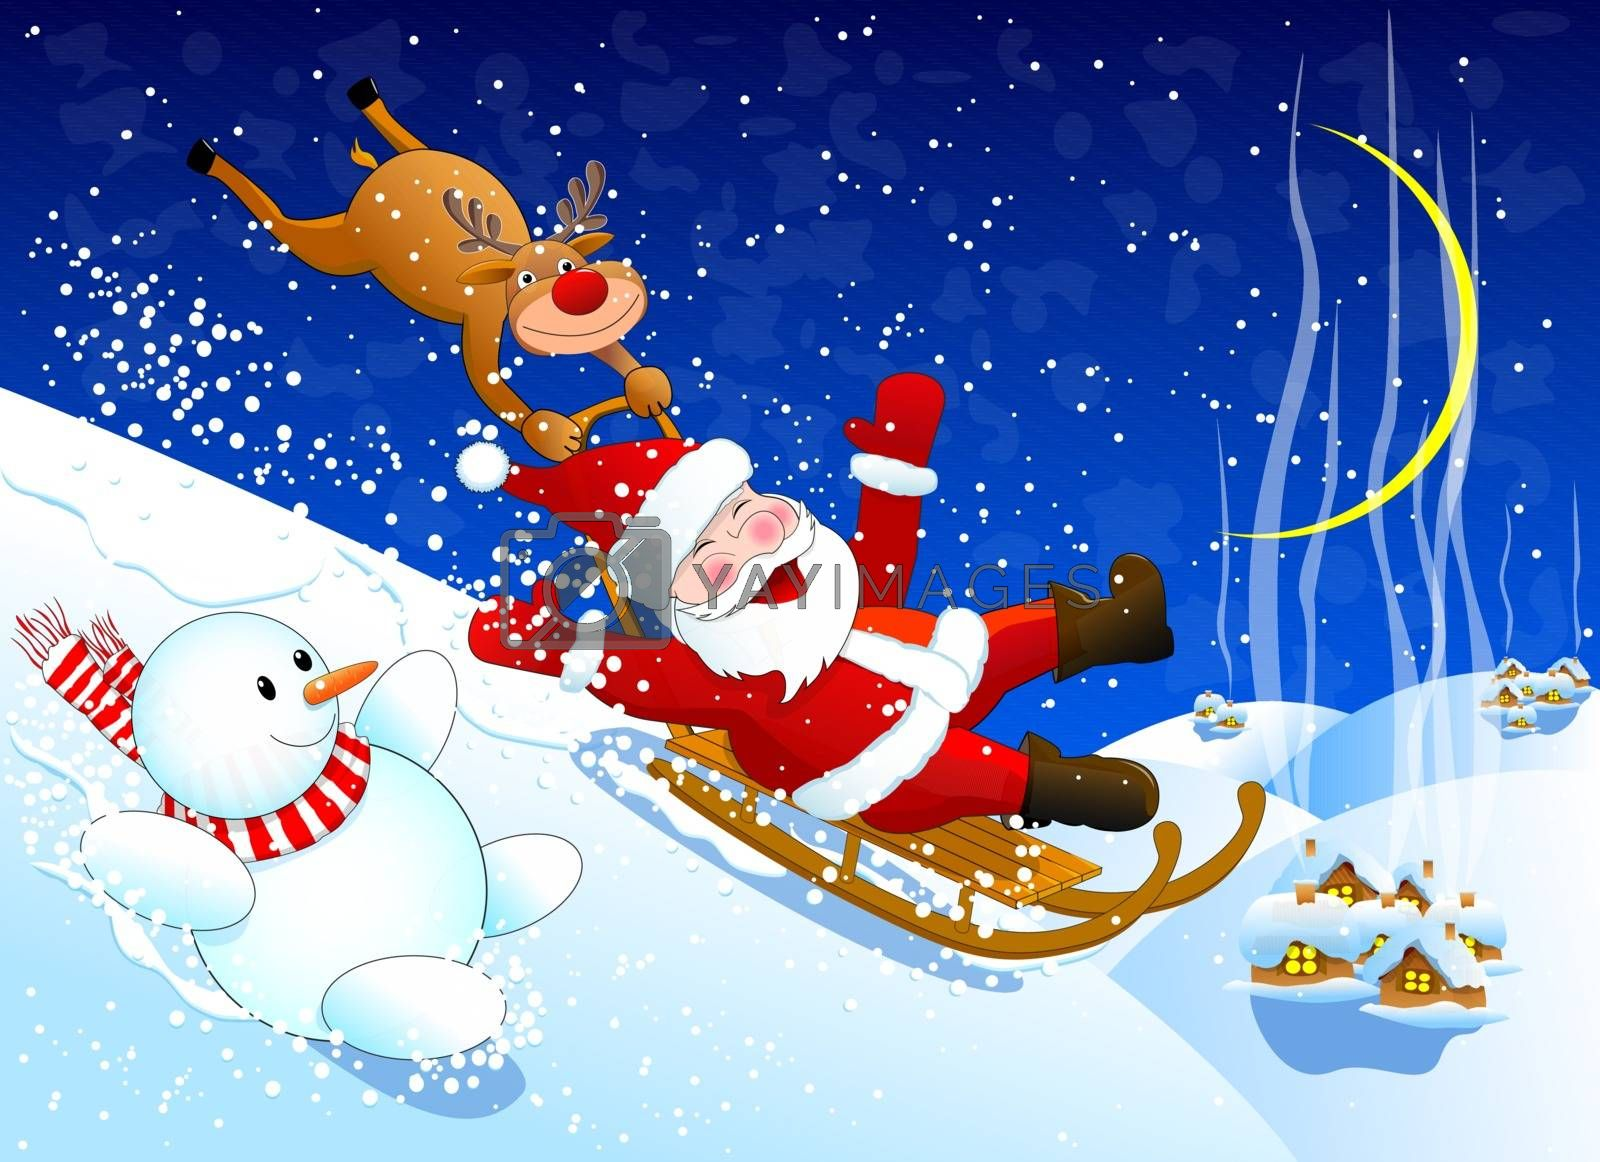 Santa, reindeer Rudolph and a snowman merrily down from the snow hill                                            Santa, reindeer Rudolph and a snowman.  Santa, reindeer Rudolph and a snowman merrily down with a snow slide. Winter Christmas night.